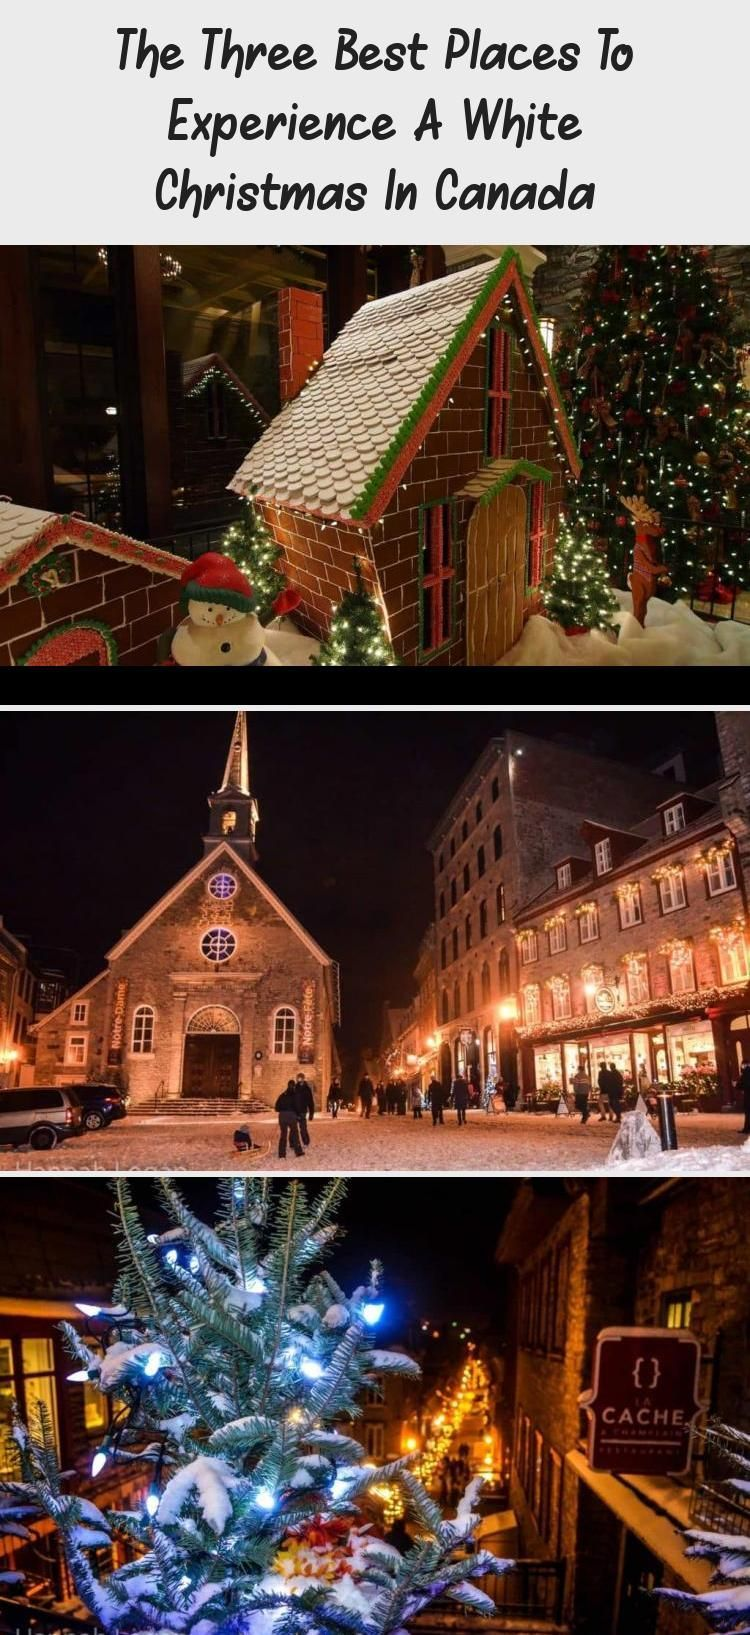 Experience A White Christmas 2020 The Three Best Places To Experience A White Christmas In Canada